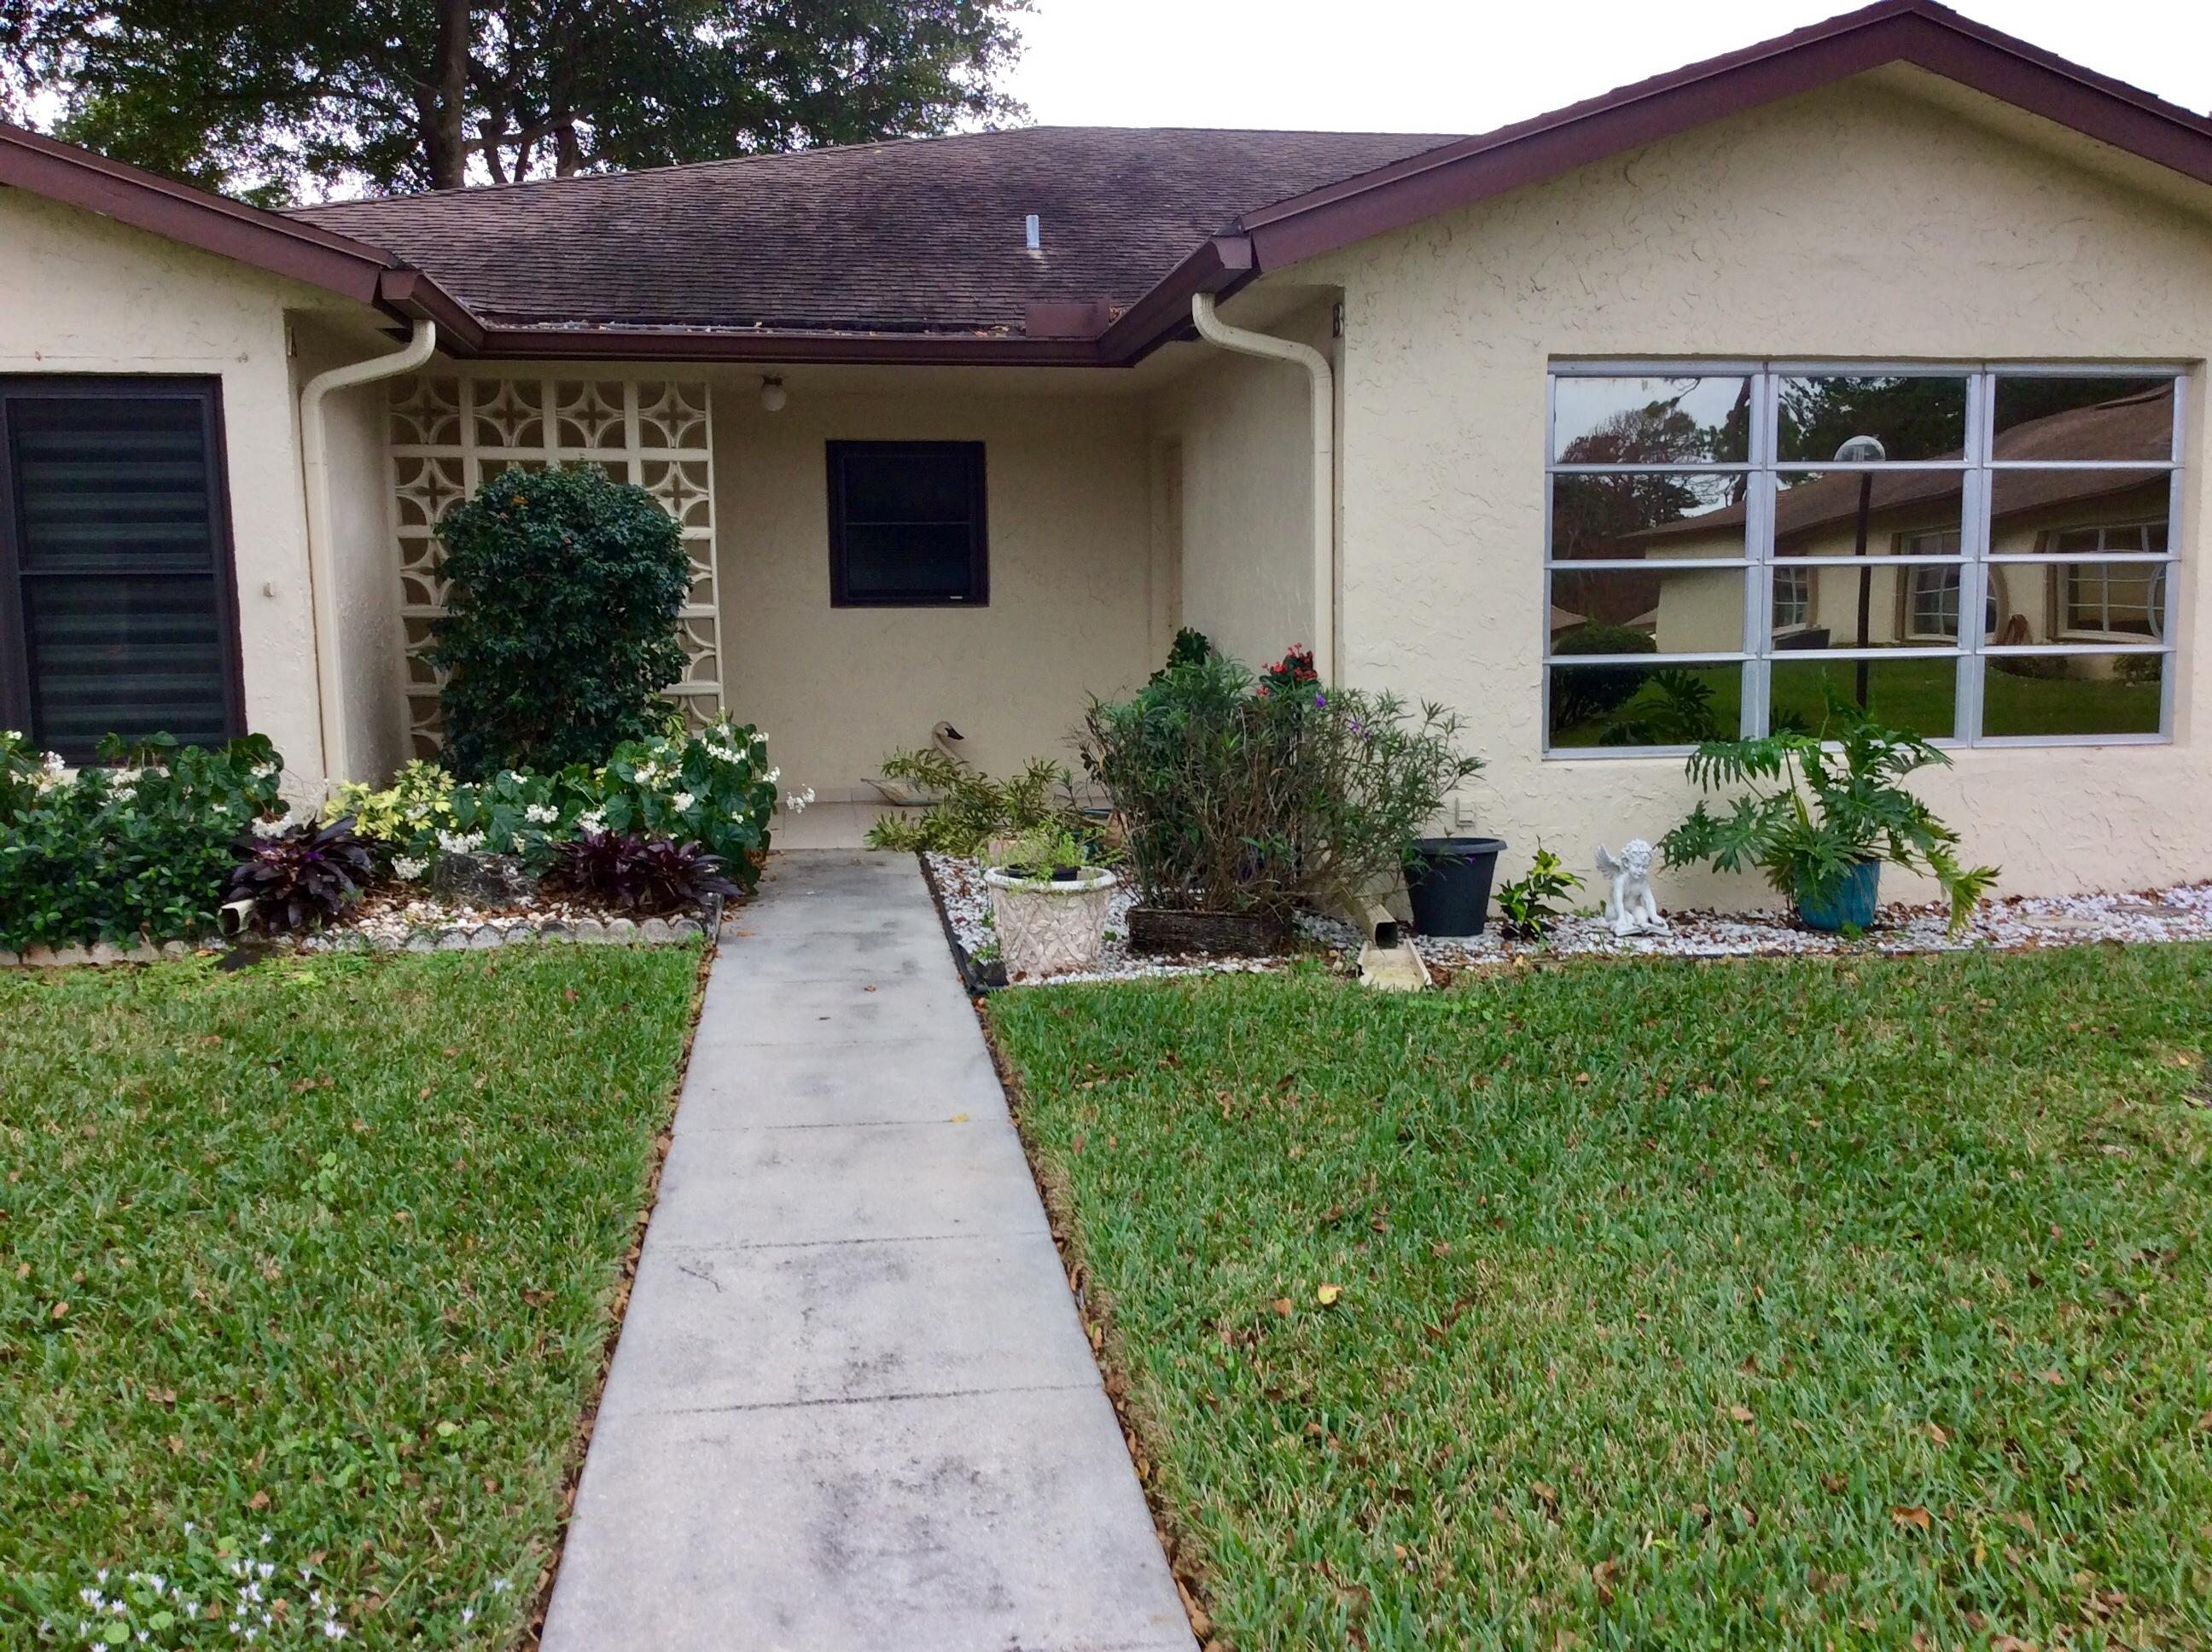 14080 Nesting Way B Delray Beach, FL 33484 Delray Beach FL 33484